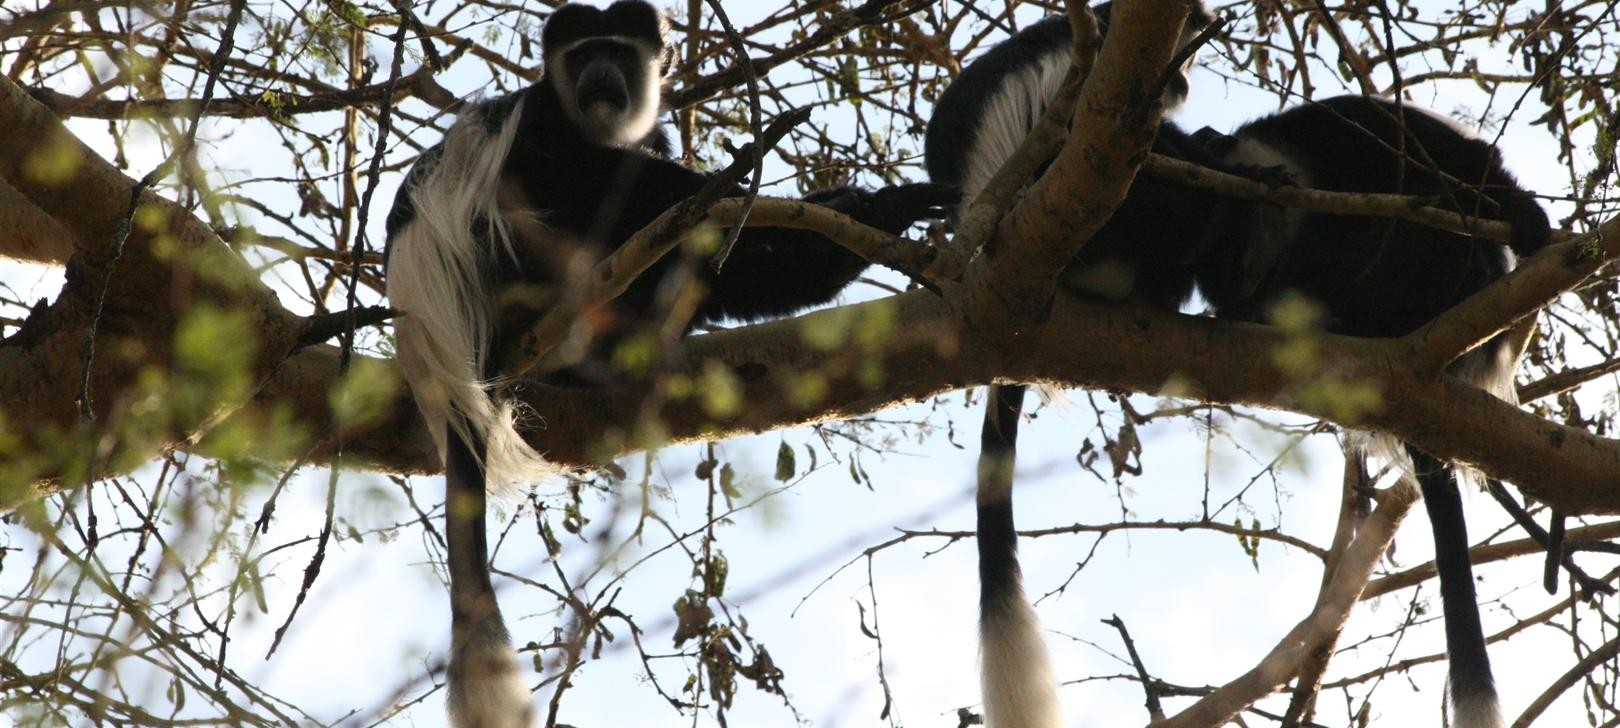 colobus at Elsamere (photo by Steward Shang)